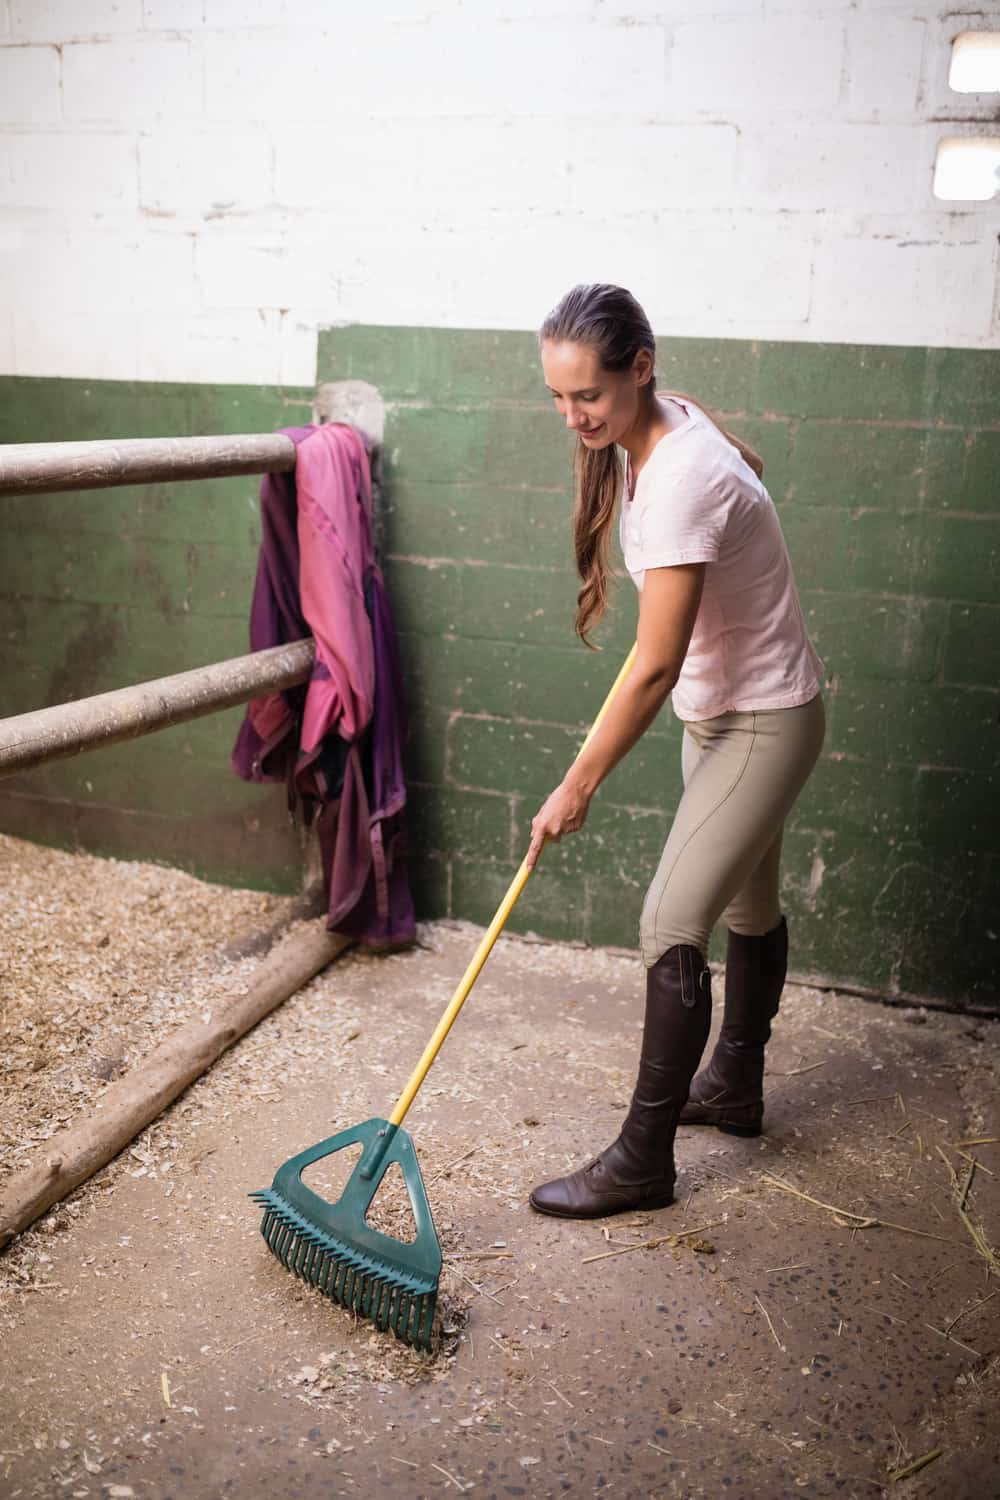 Clean the Stable